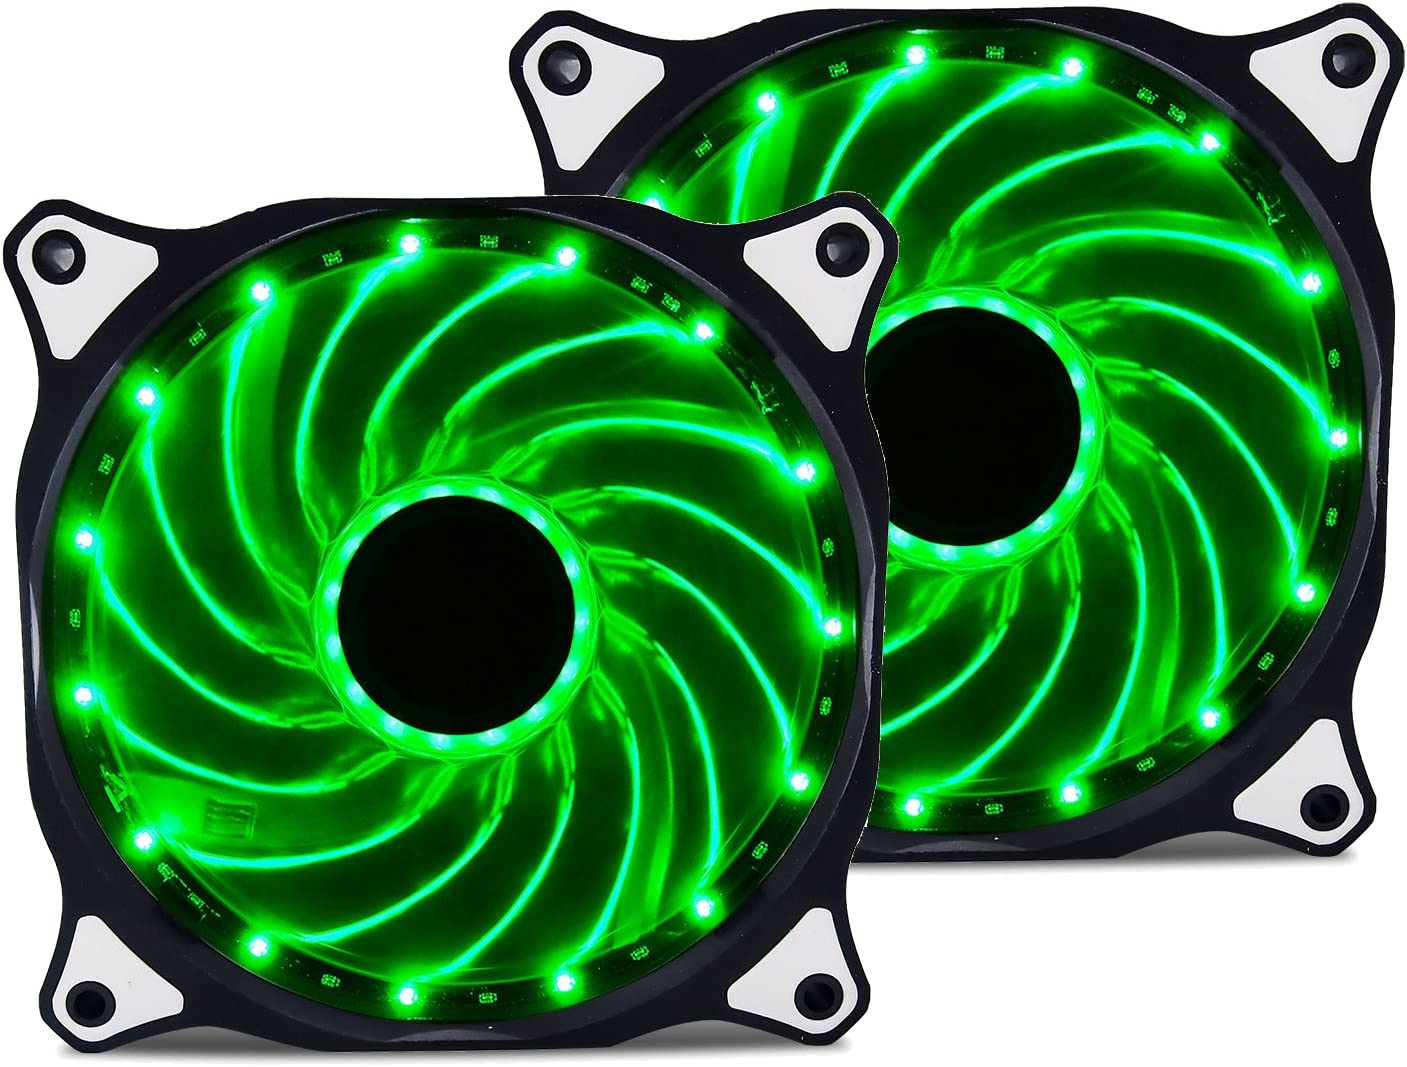 Vetroo 120mm Green 15-LEDs Cooling Fan for Computer PC Cases, CPU Coolers and Radiators, 2-Pack